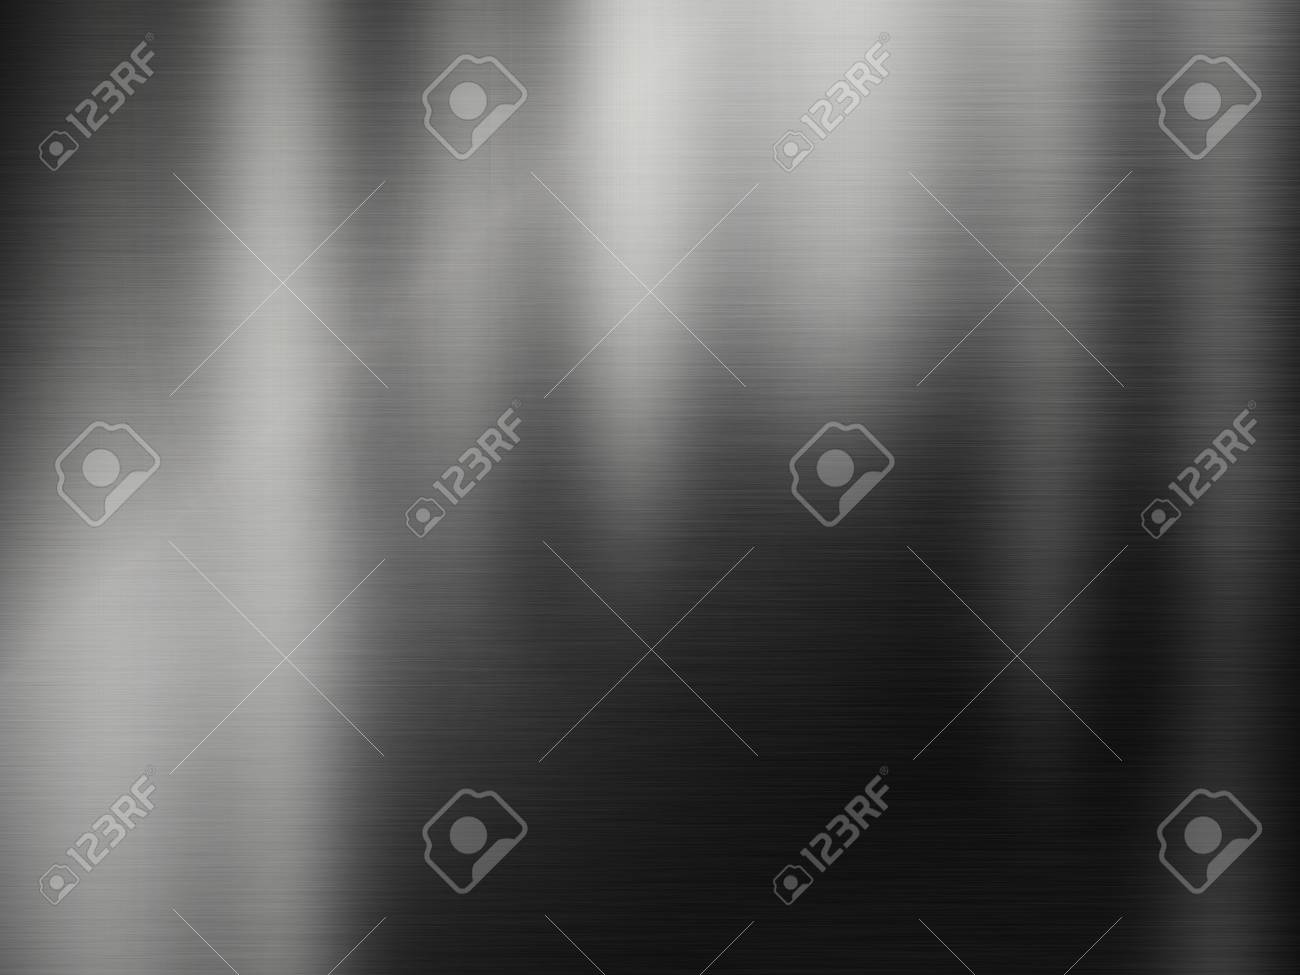 Stainless steel texture or metal texture background Banque d'images - 75076726